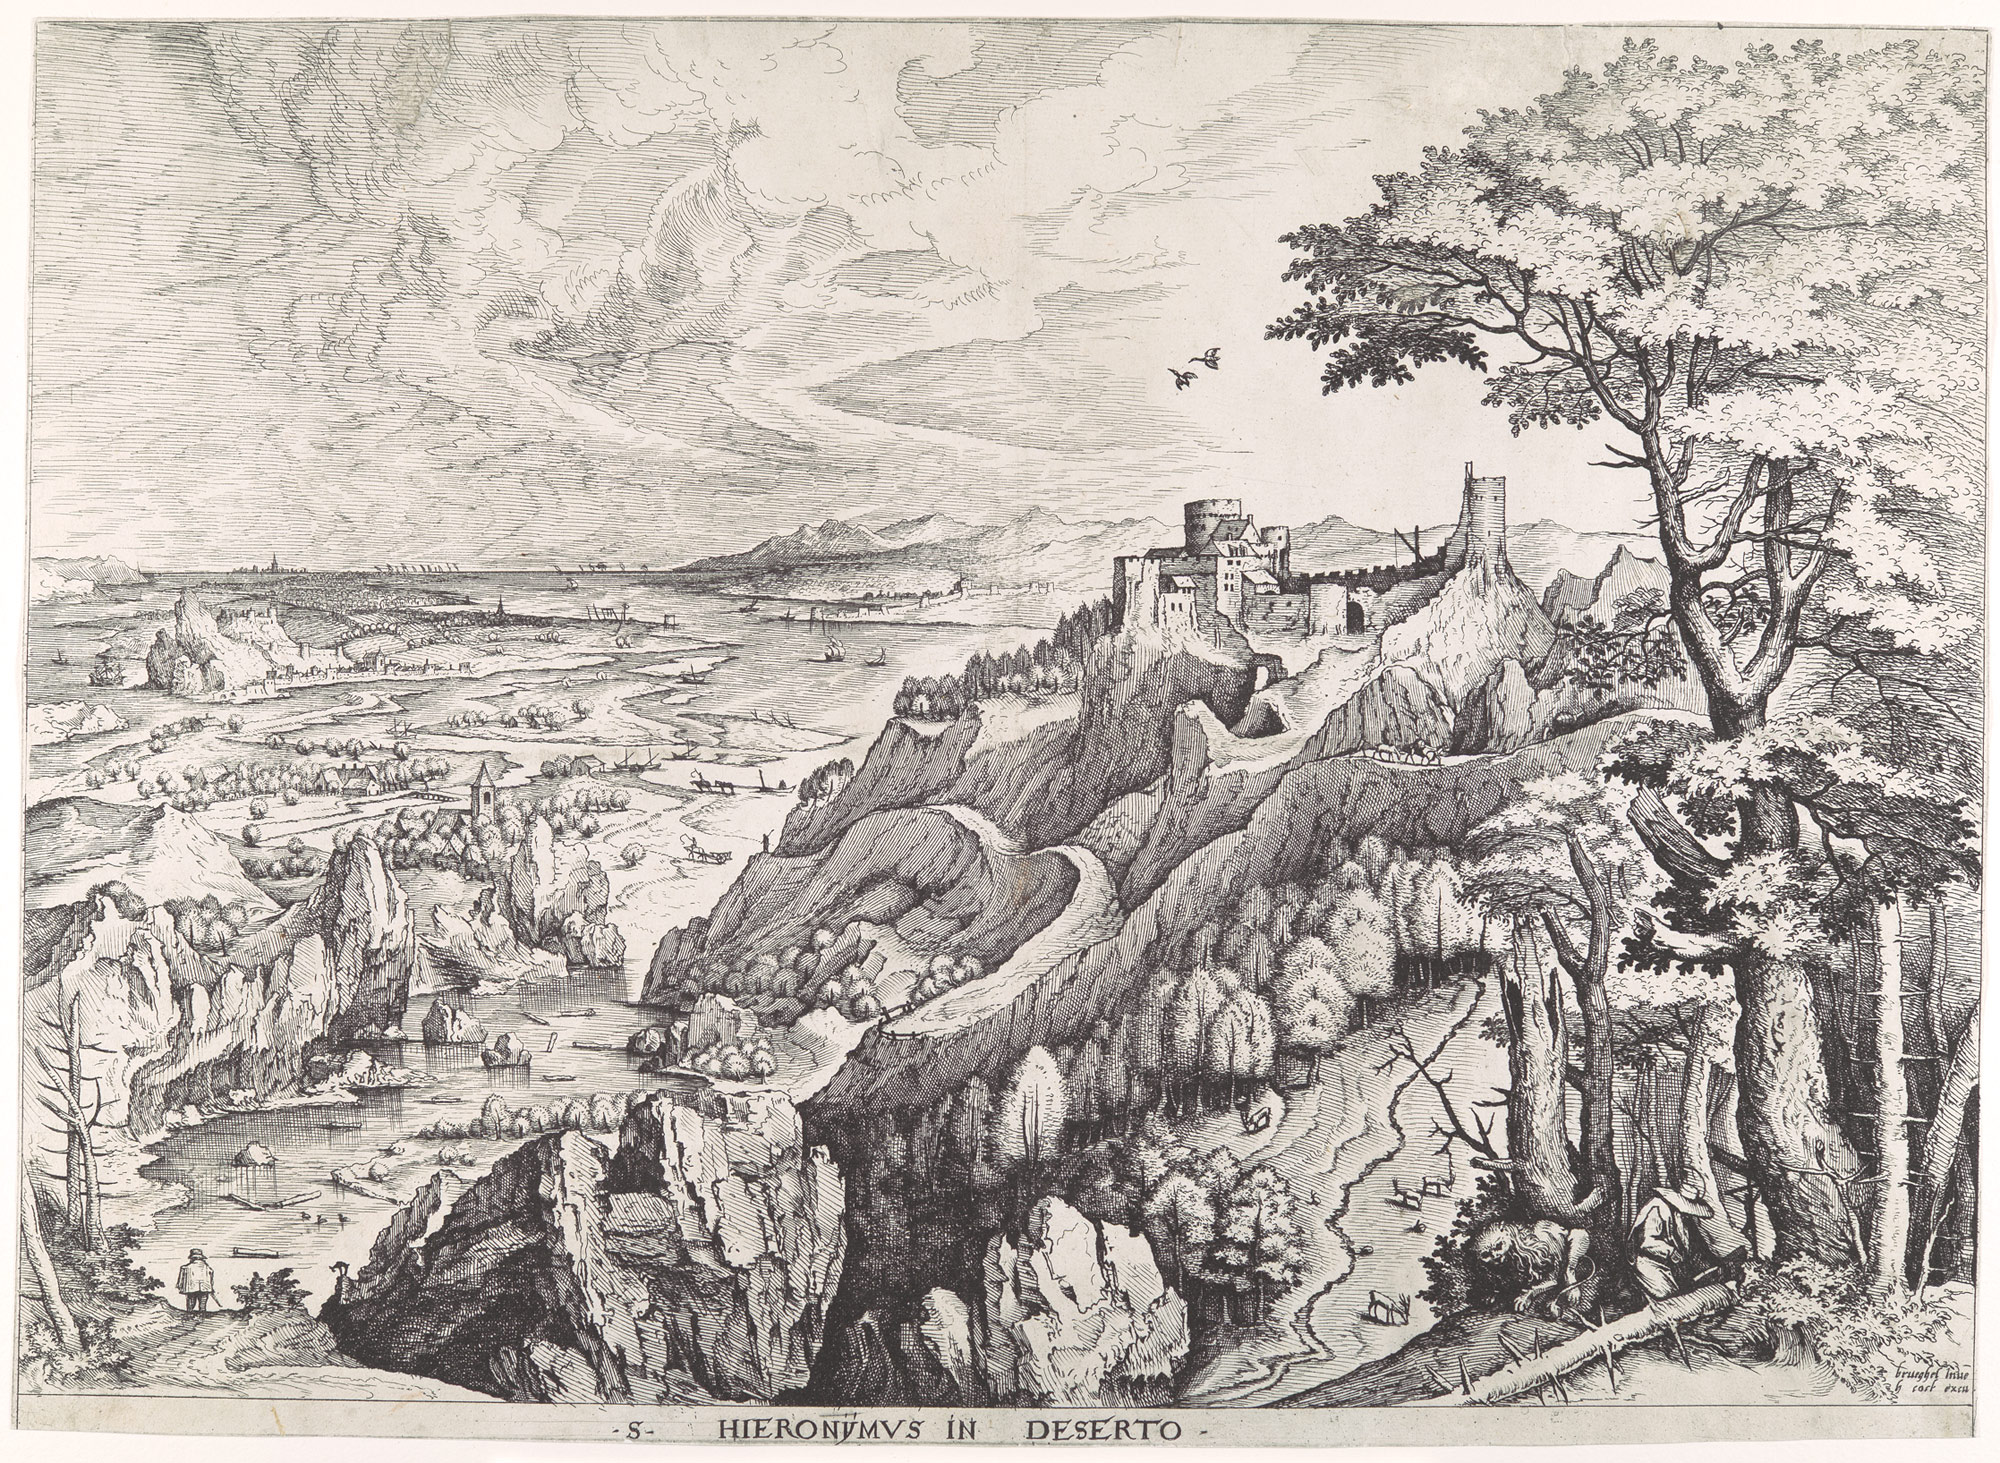 pieter bruegel the elder ca essay heilbrunn st jerome in the wilderness s hieronymus in deserto from the large